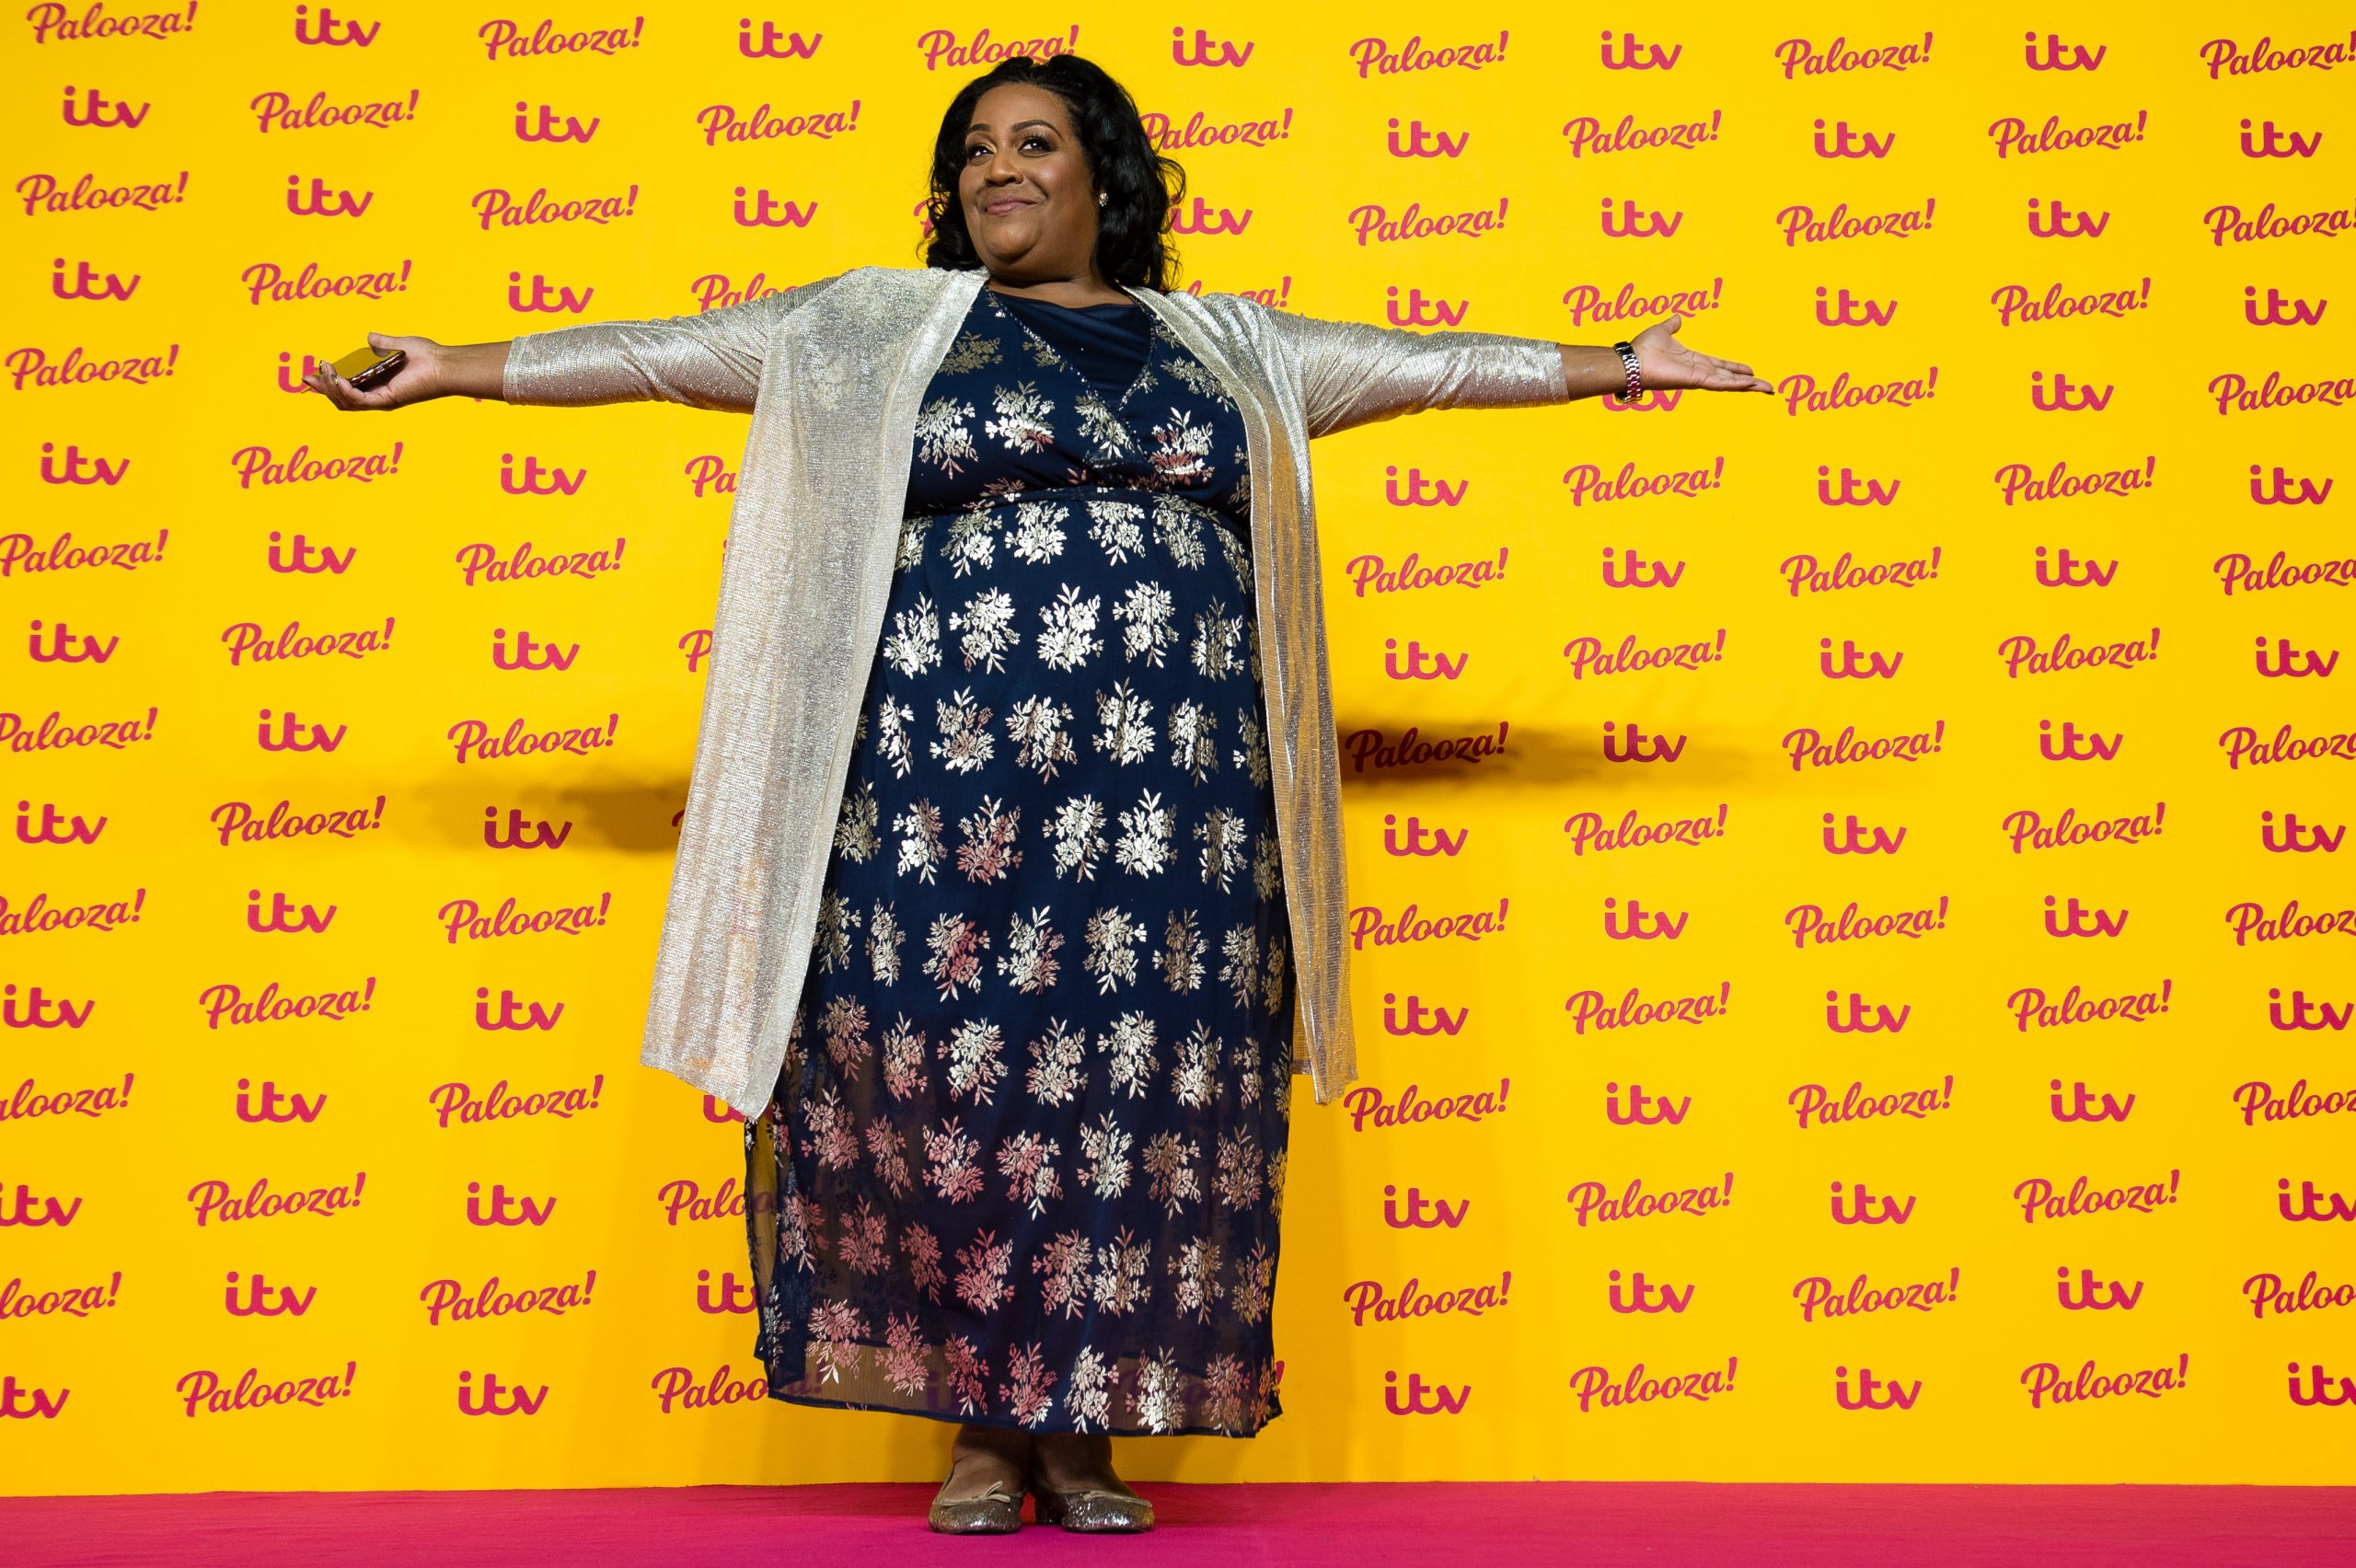 Alison Hammond's funniest TV moments: From Big Brother to This Morning